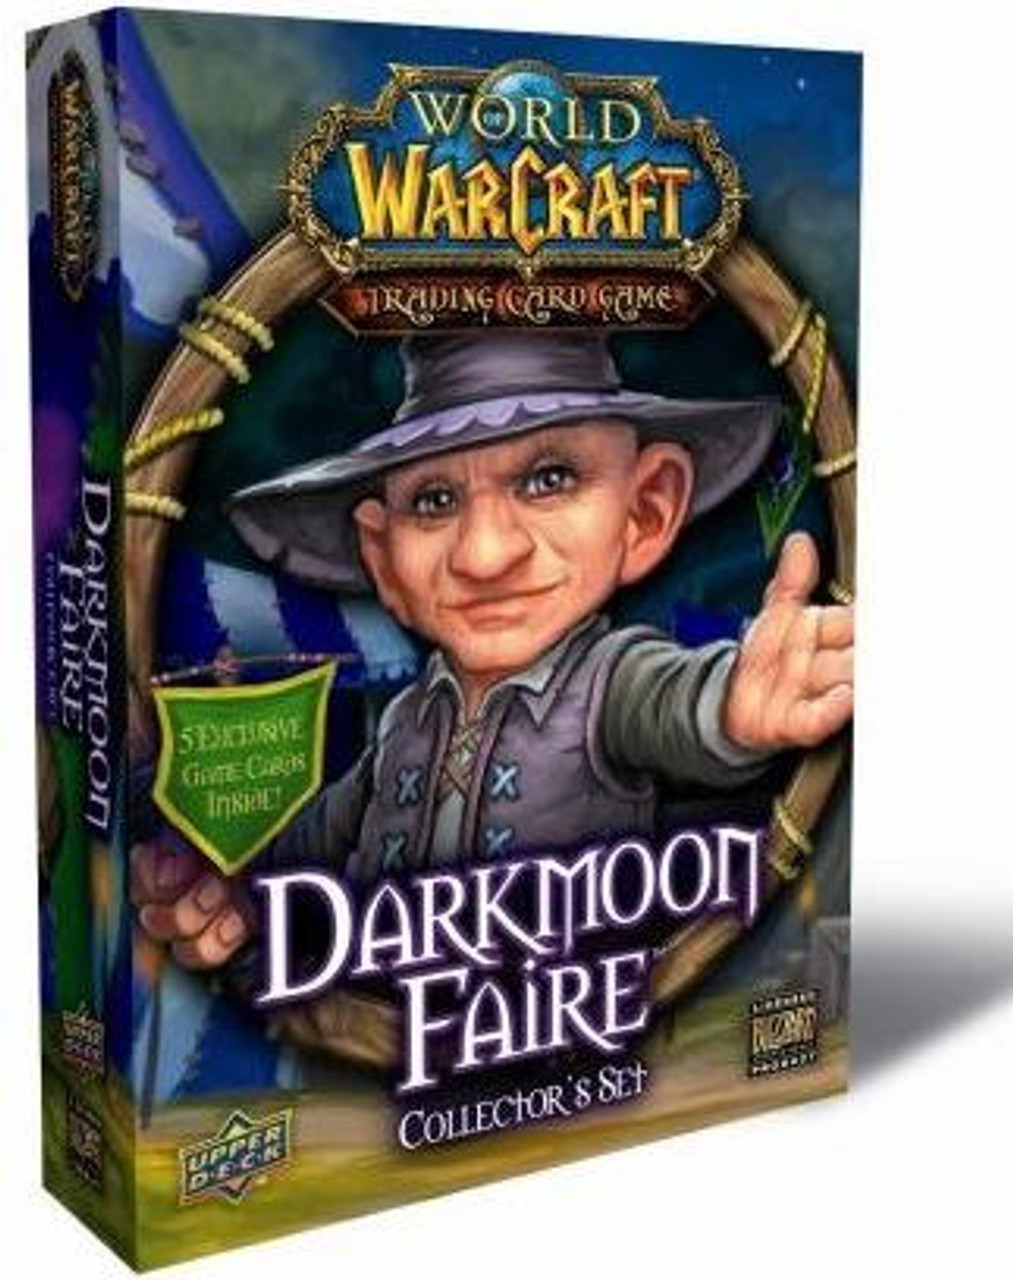 World of Warcraft Trading Card Game Darkmoon Faire Collector's Set